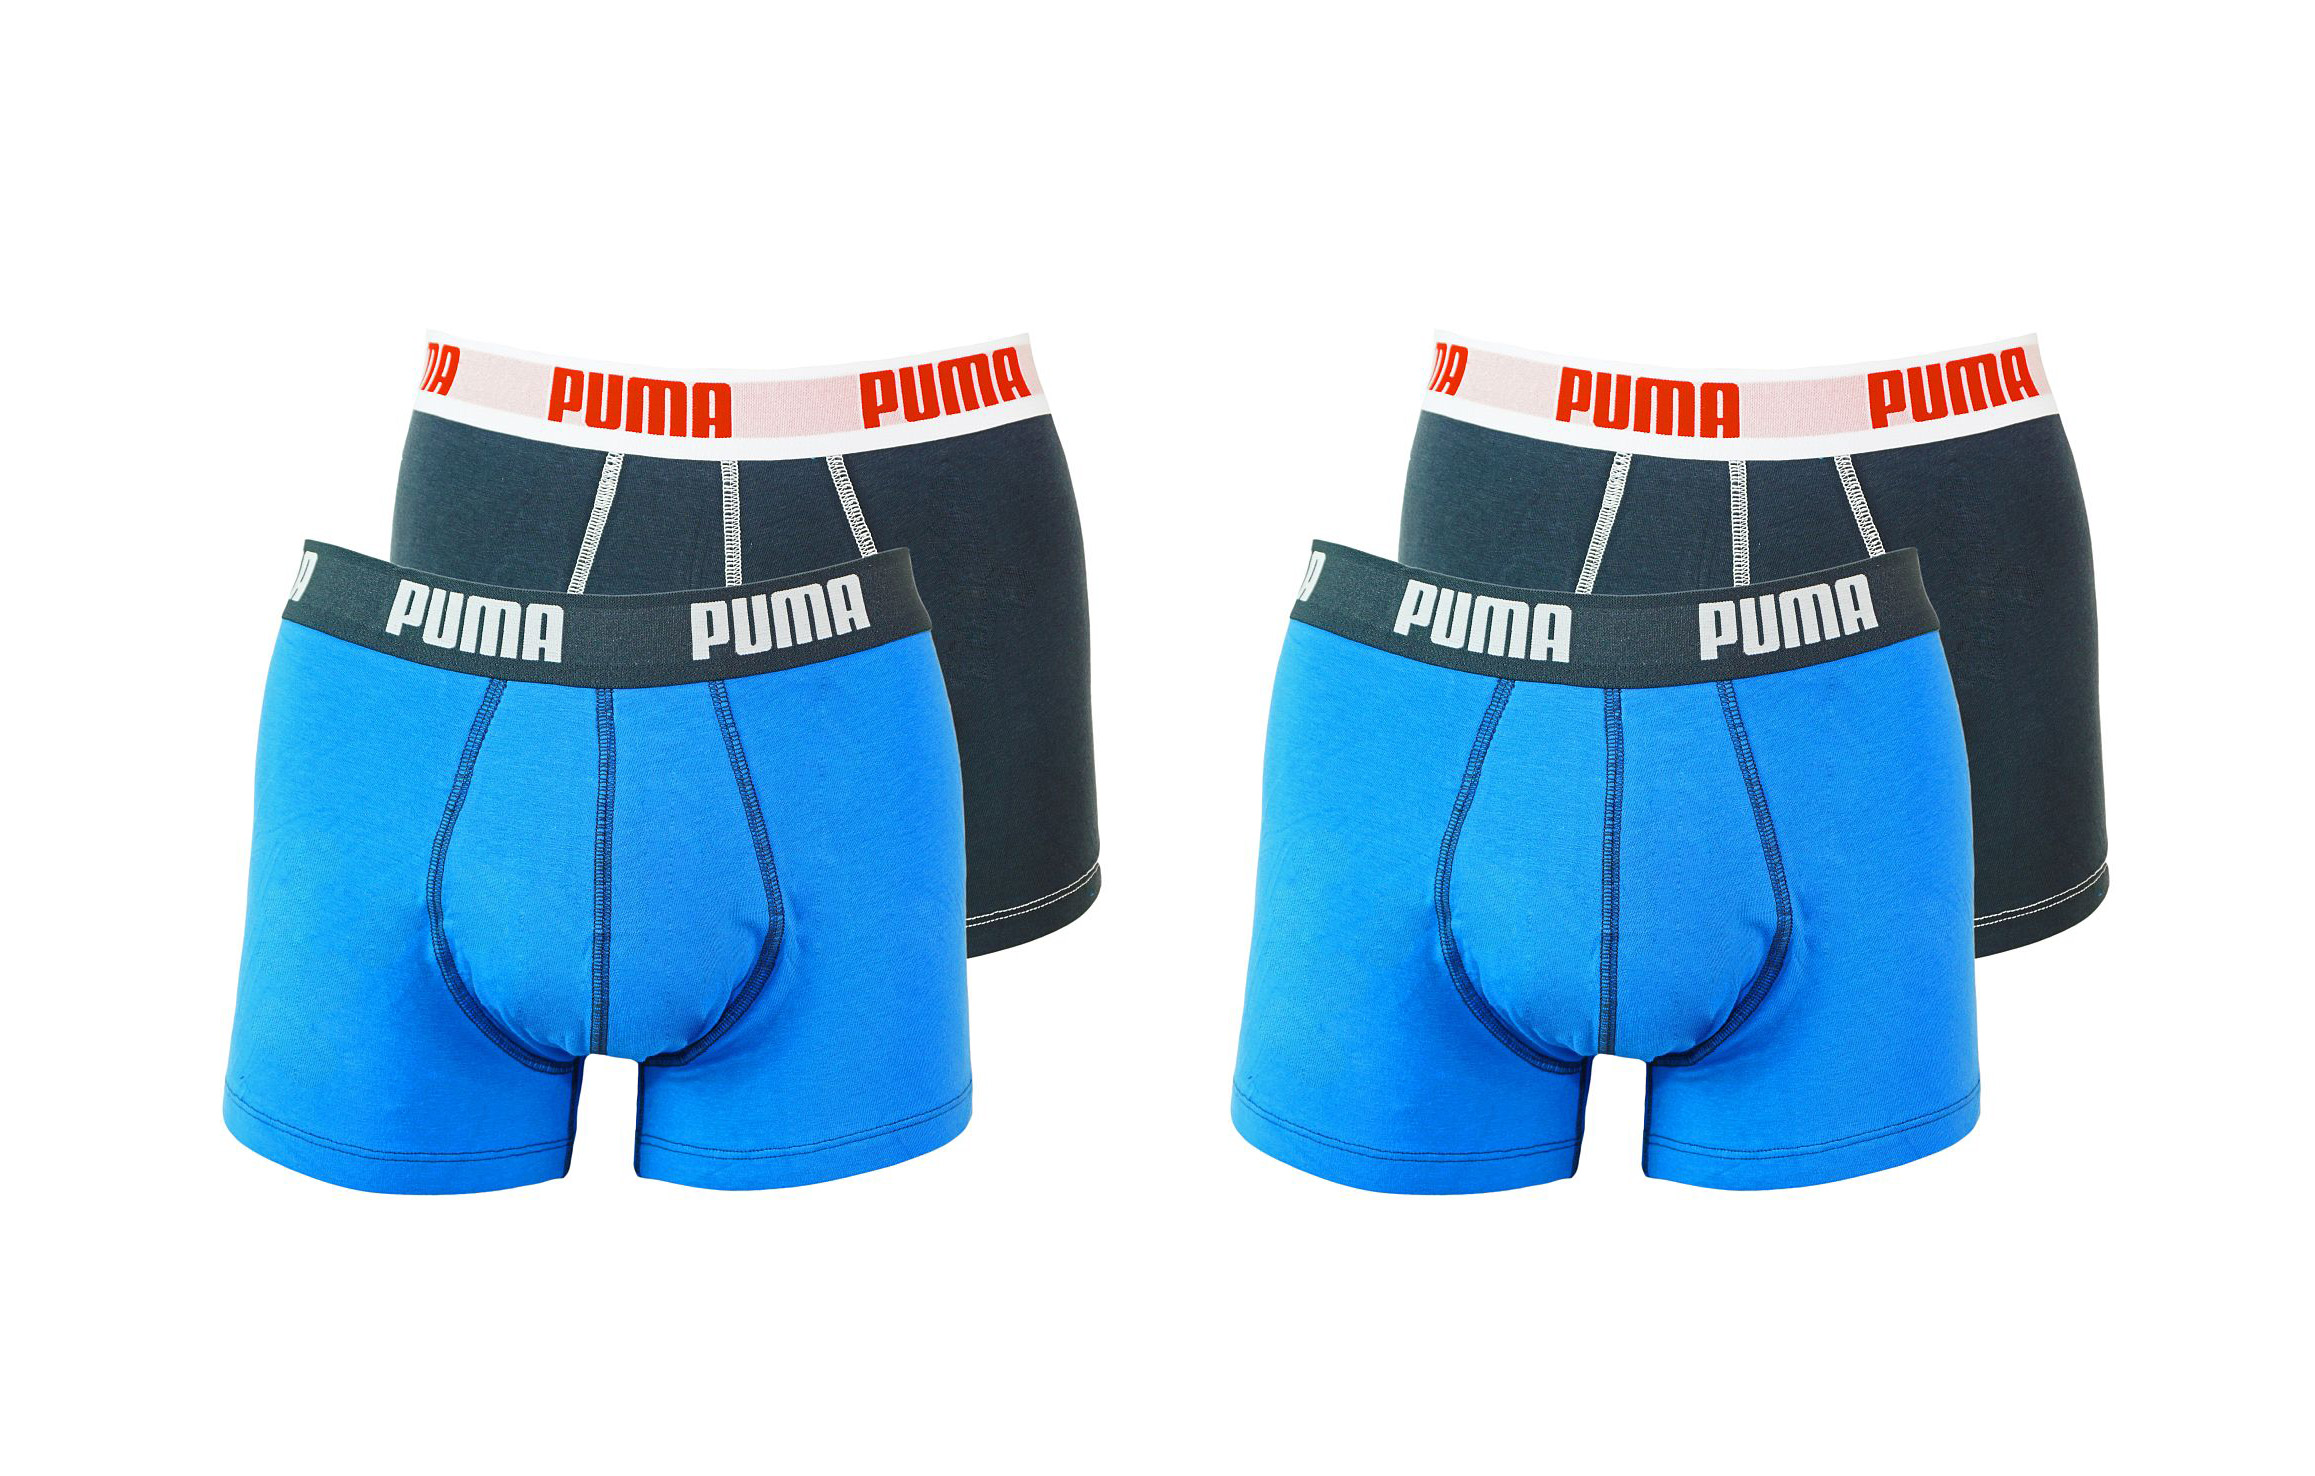 PUMA Shorts Unterhosen 2 x 2er Pack Trunk 521025001 056 020 blue SF17-PMS2